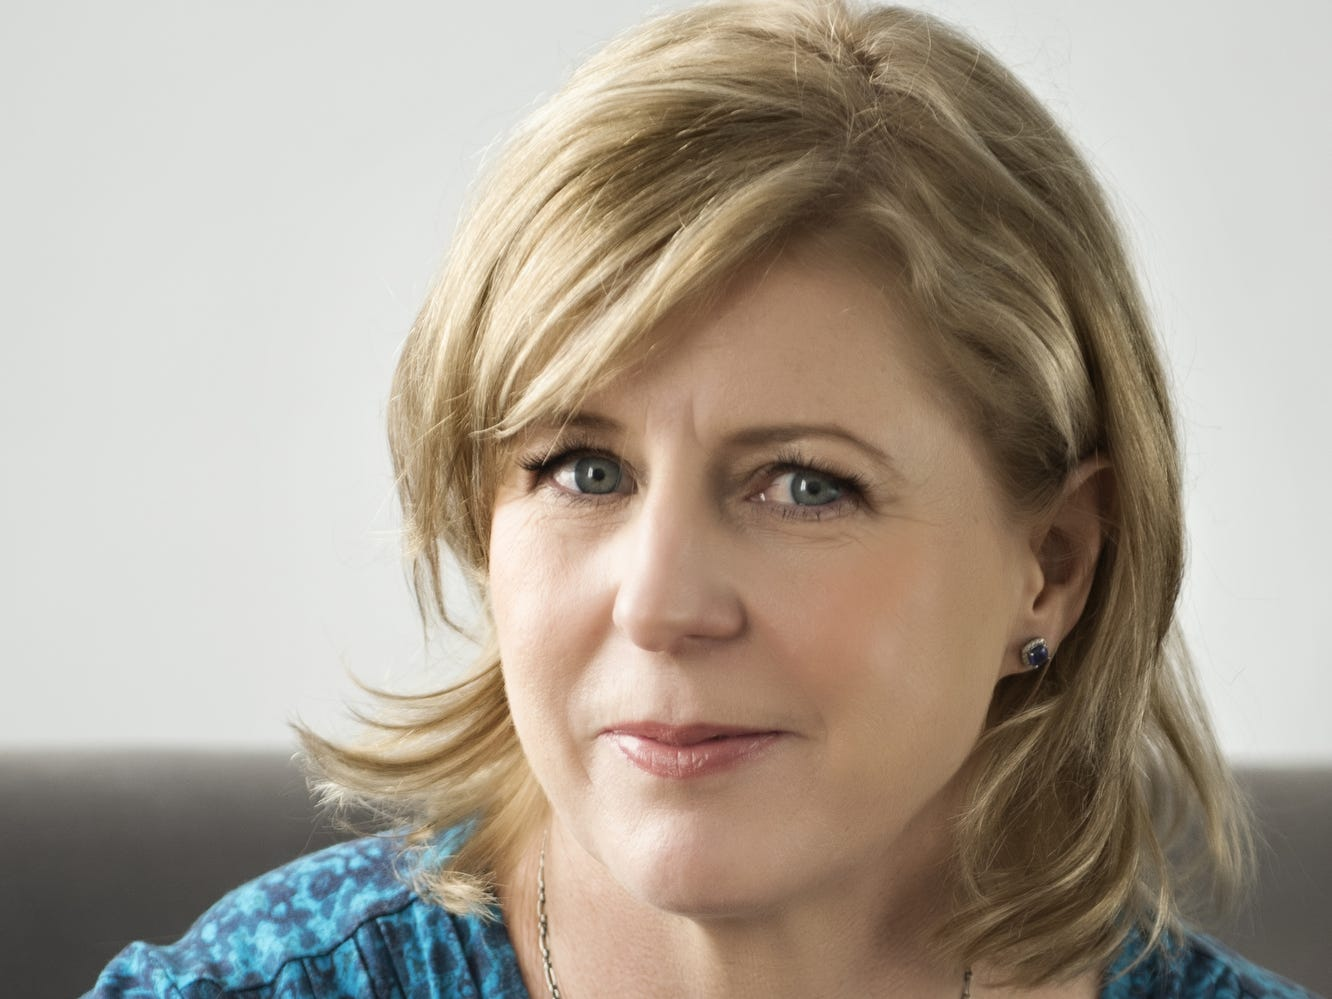 NOV. 9  SALON@615 SPECIAL EDITION WITH LIANE MORIARTY: 4:30 p.m. Lipscomb University's Collins Auditorium, $32.50, nashvillepubliclibrary.org/salonat615